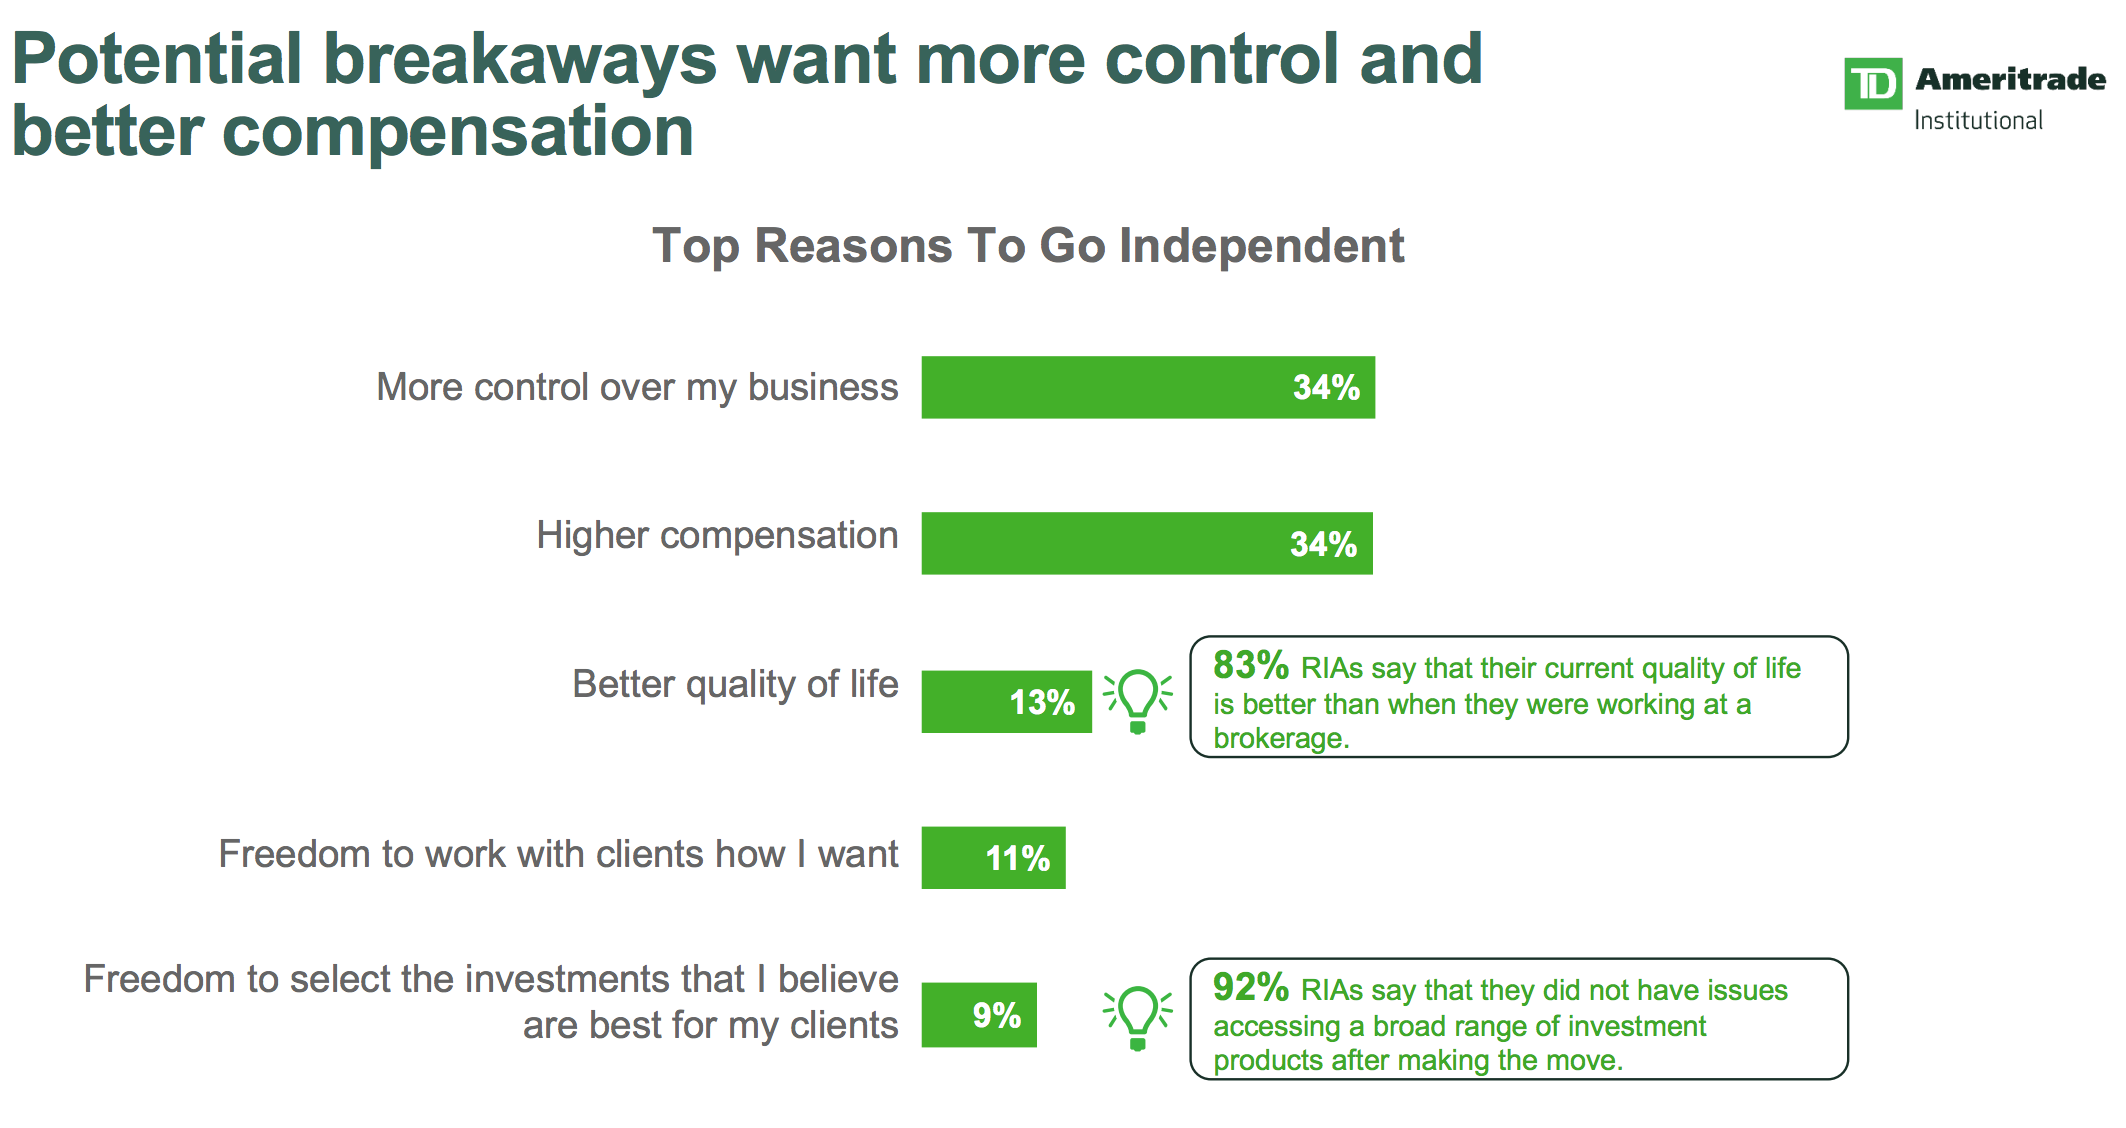 Money Draws Brokers to RIAs, Not Just Doing Better for Clients: TD Survey